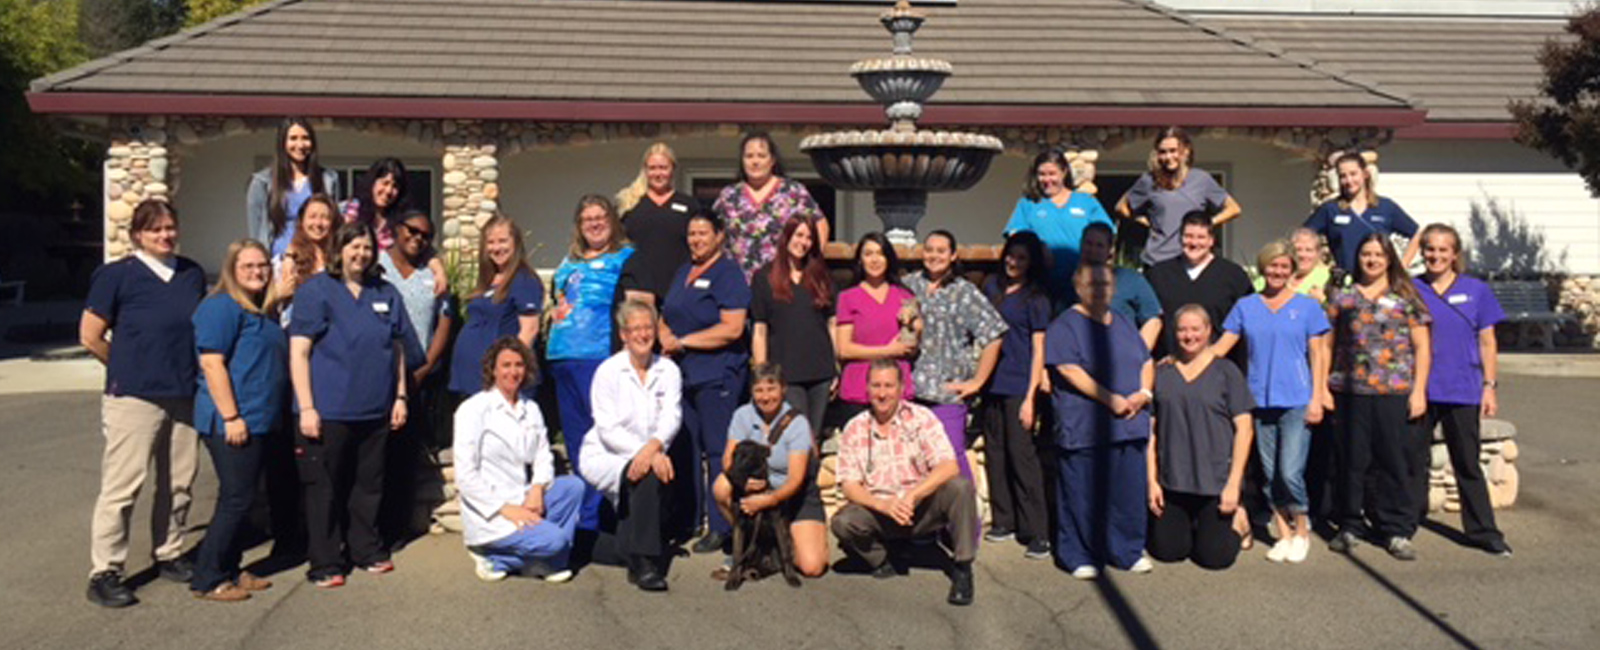 Team Picture of VCA Sunset Animal Hospital